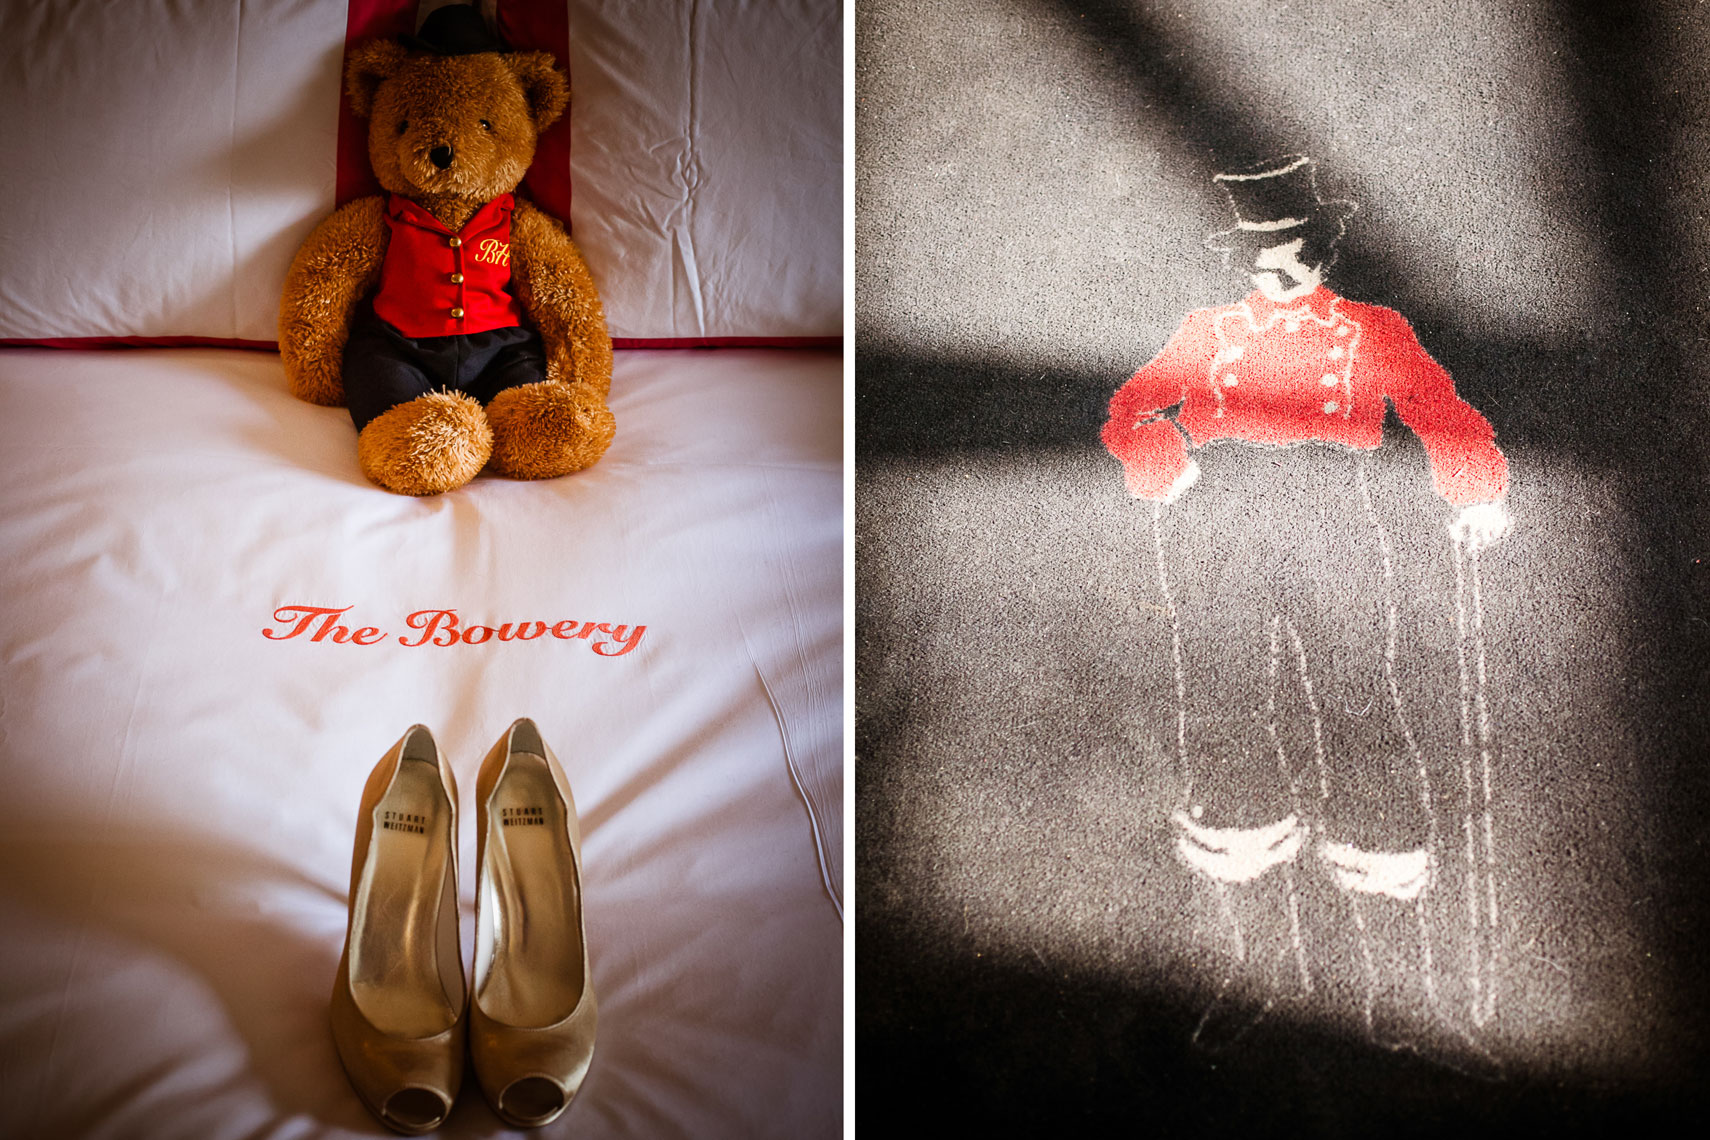 bowery-hotel-wedding-02